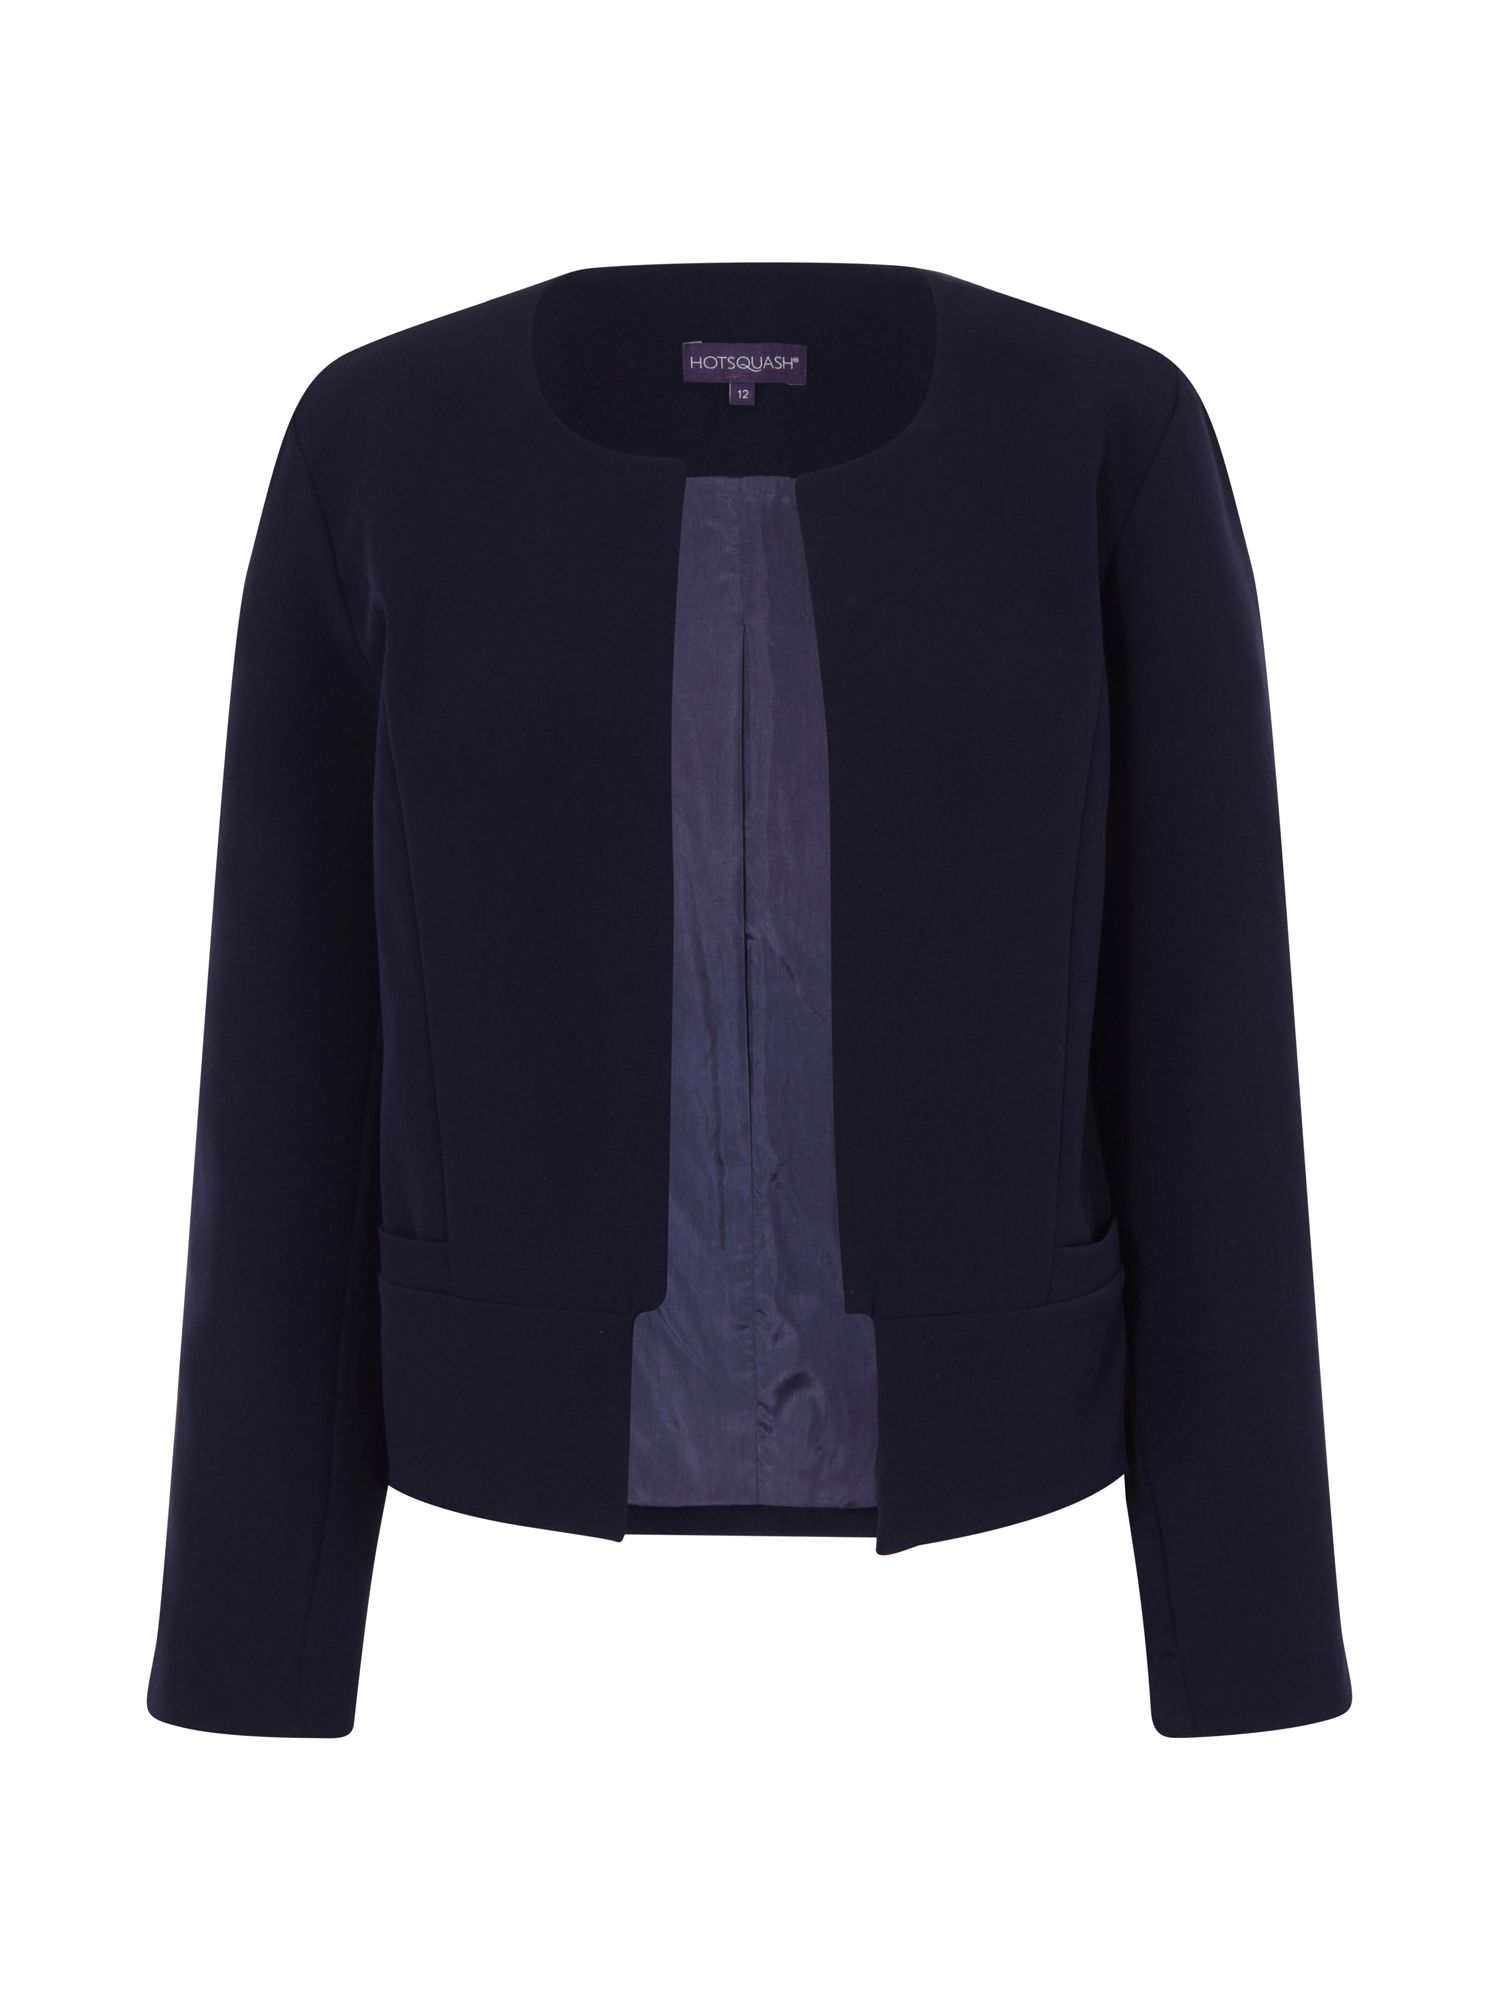 HotSquash Collarless Jacket in Clever Fabric, Blue